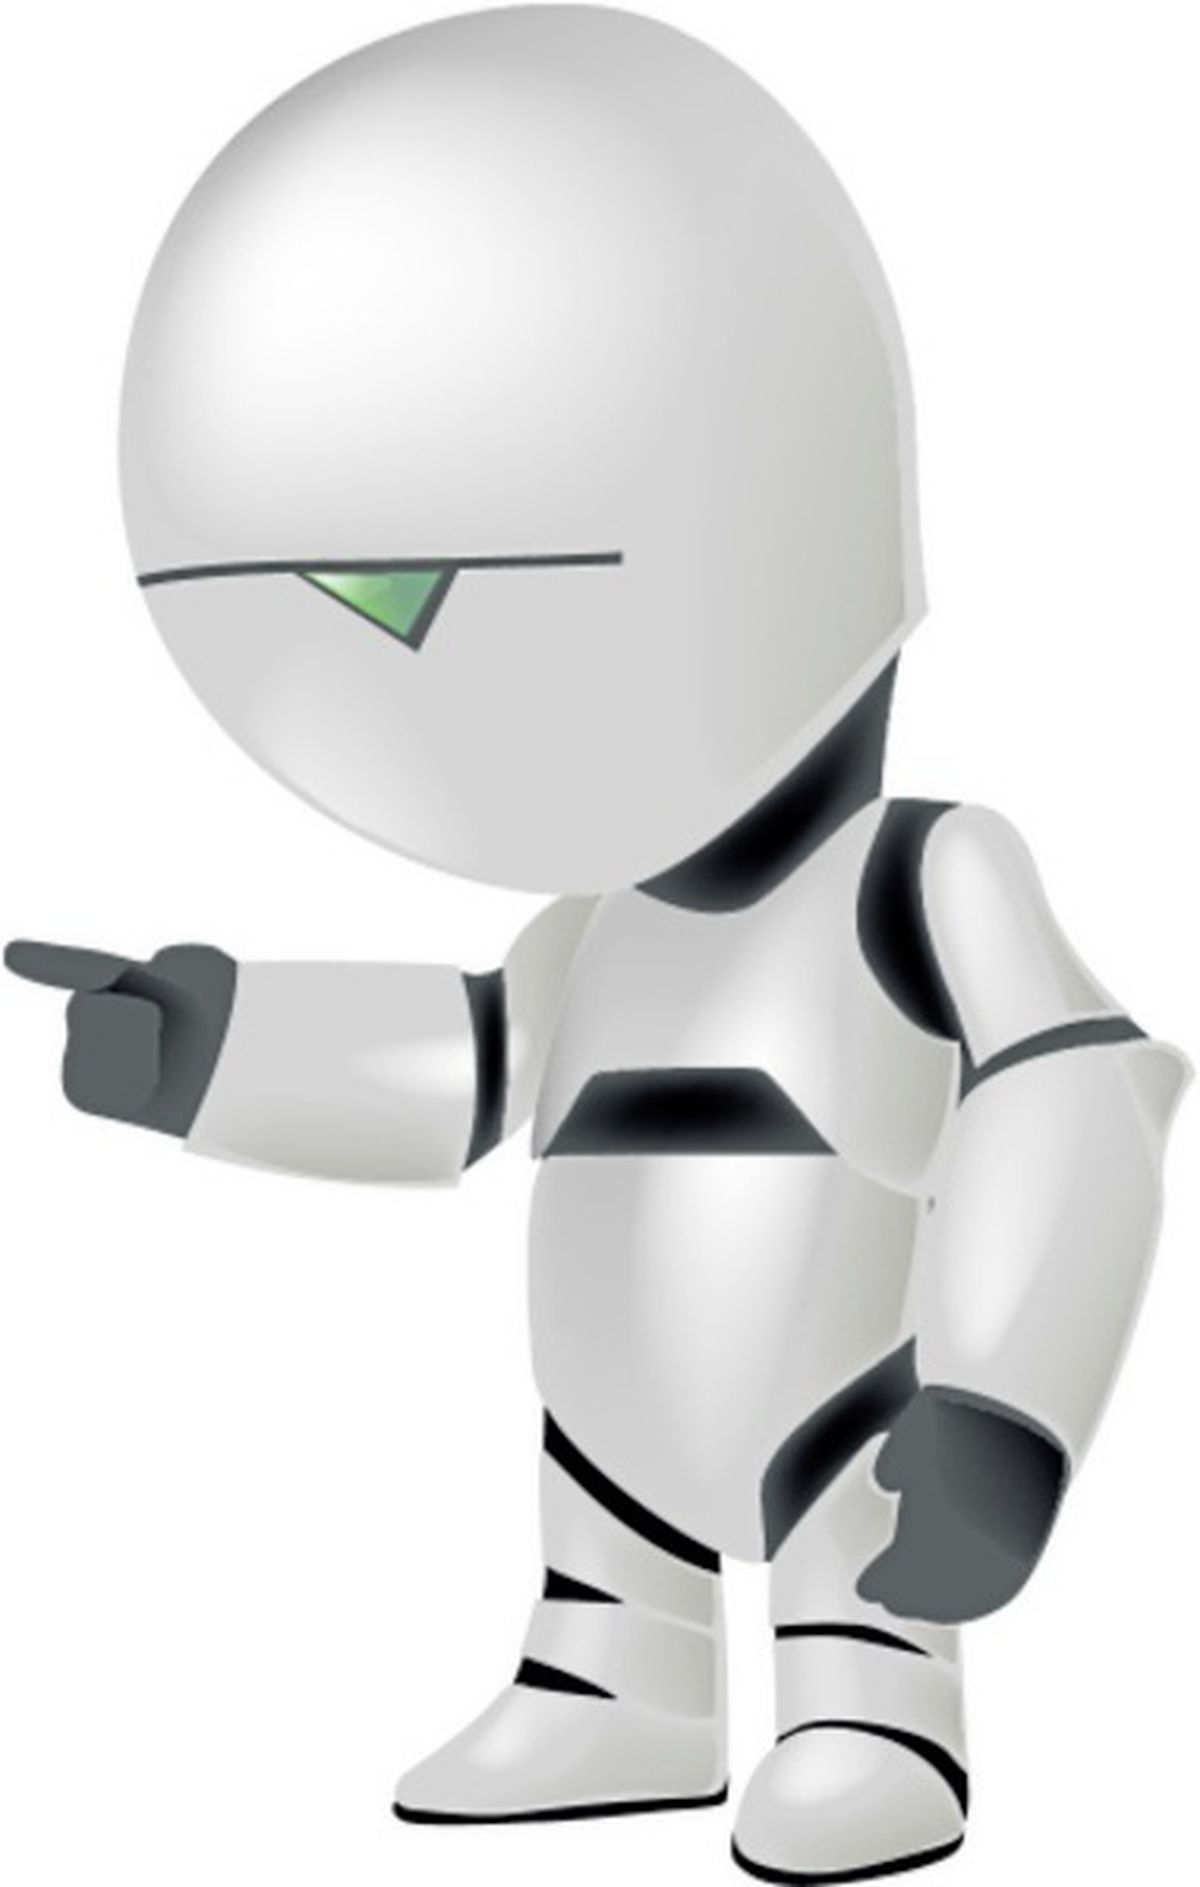 Marvin the paranoid android. (28649005)